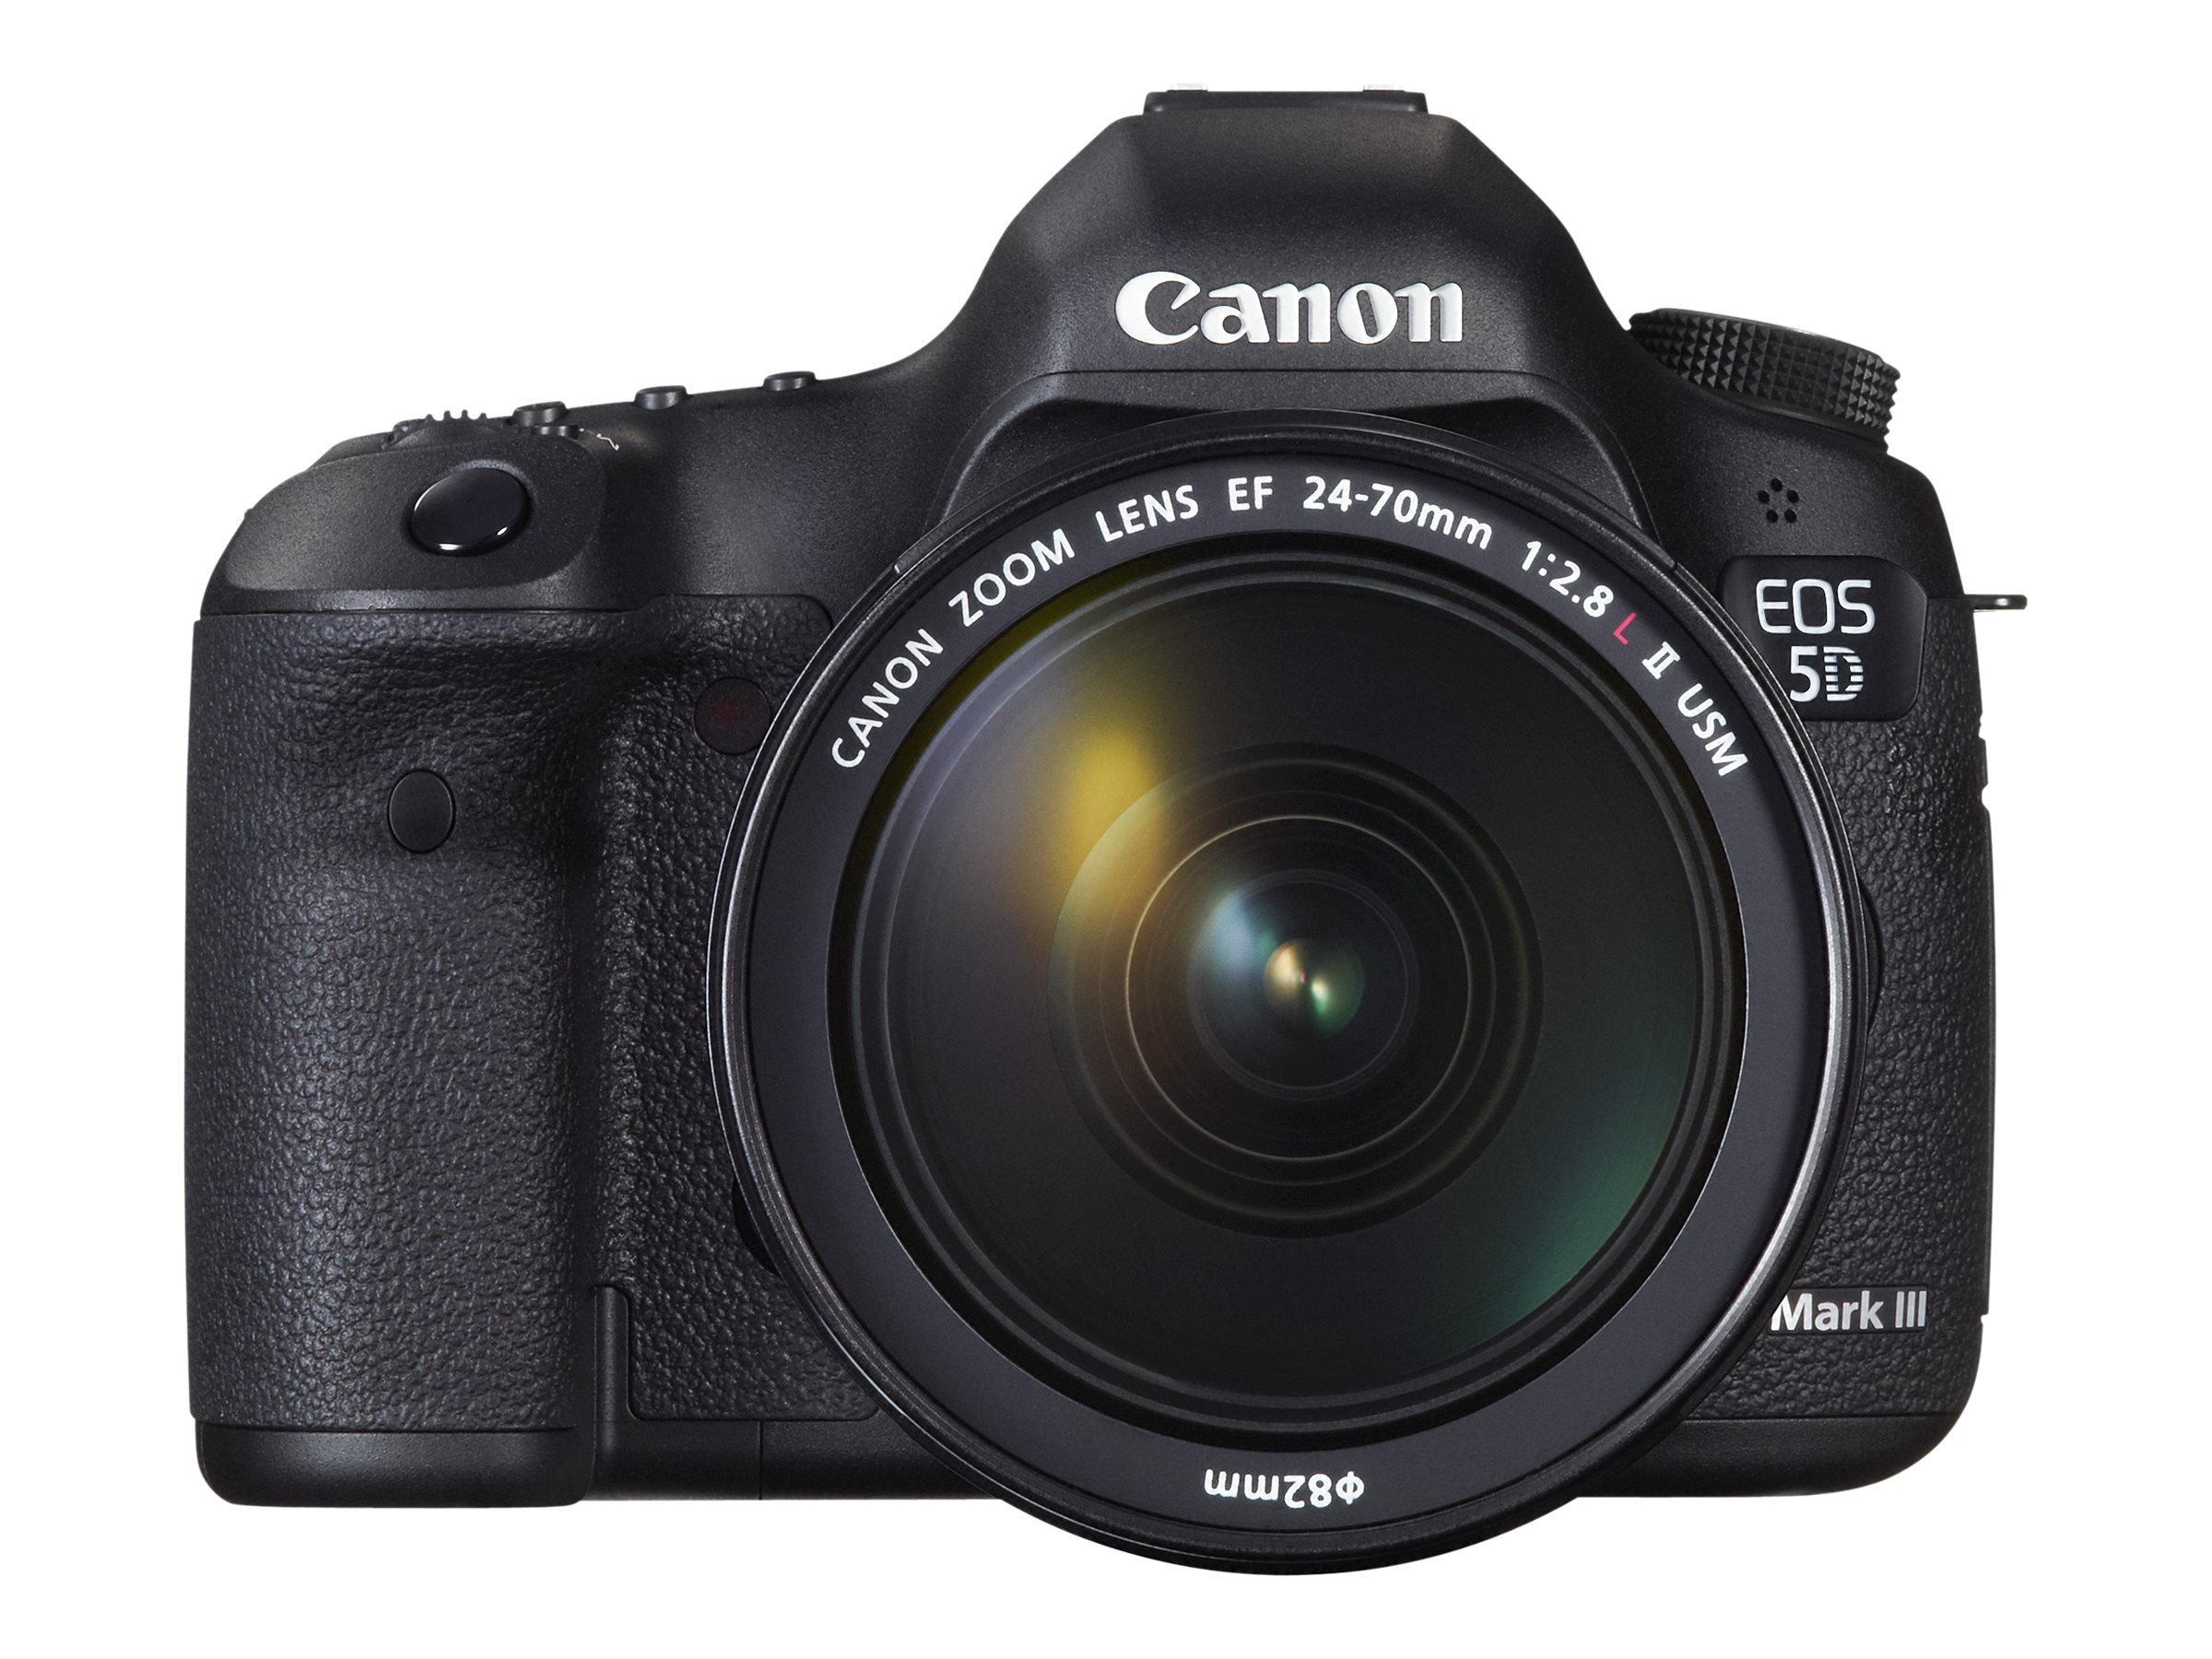 Canon EOS 5D Mark III DSLR Camera with EF 24-70mm Lens